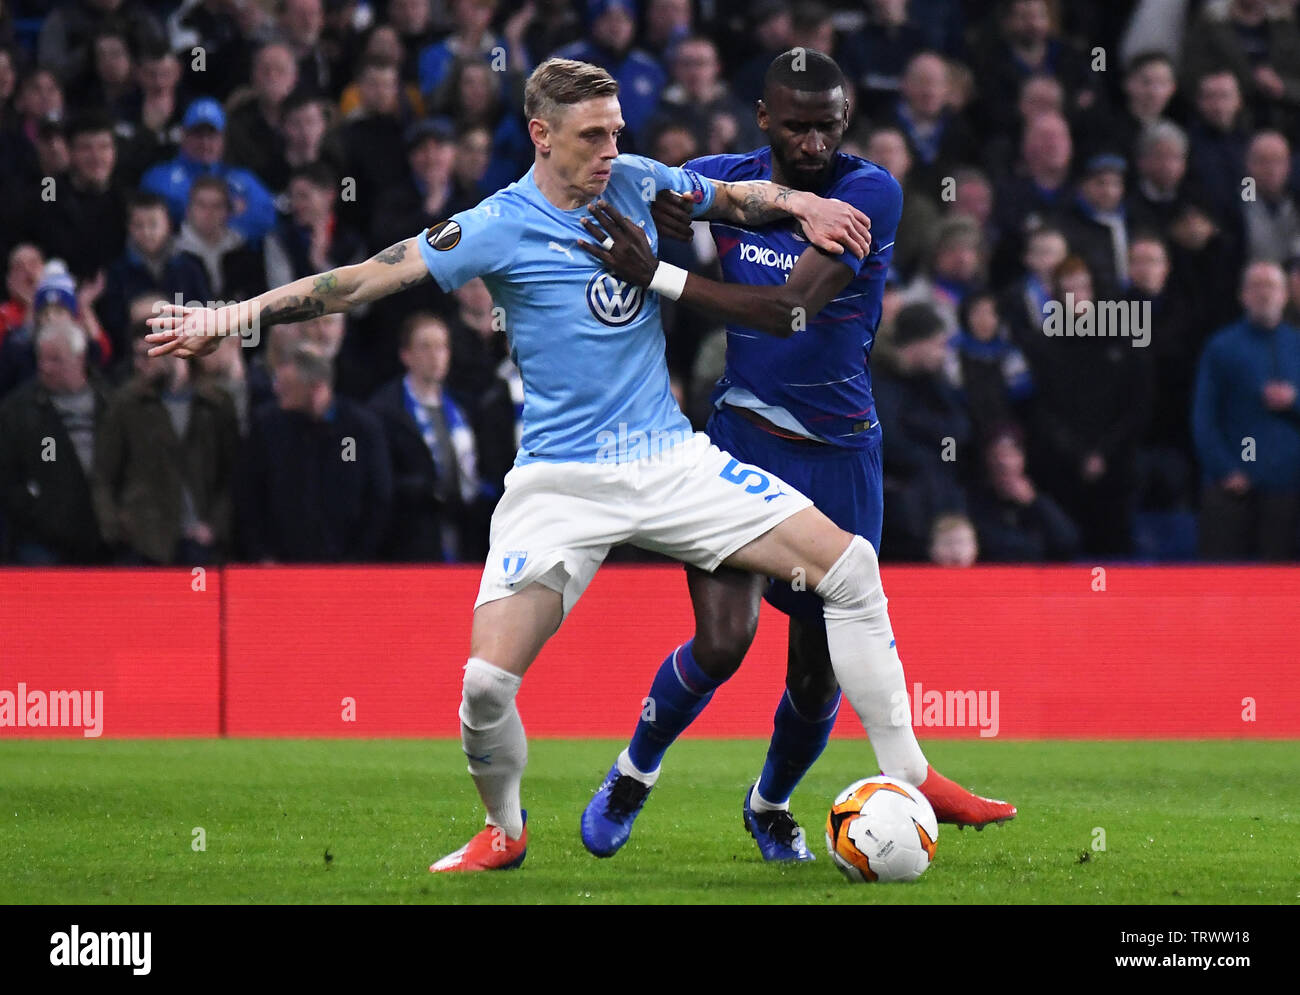 LONDON, ENGLAND - FEBRUARY 21, 2019: Soren Rieks of Malmo and Antonio Rudiger  of Chelsea pictured during the second leg of the 2018/19 UEFA Europa League Round of 32 game between Chelsea FC (England) and Malmo FF (Sweden) at Stamford Bridge. - Stock Image